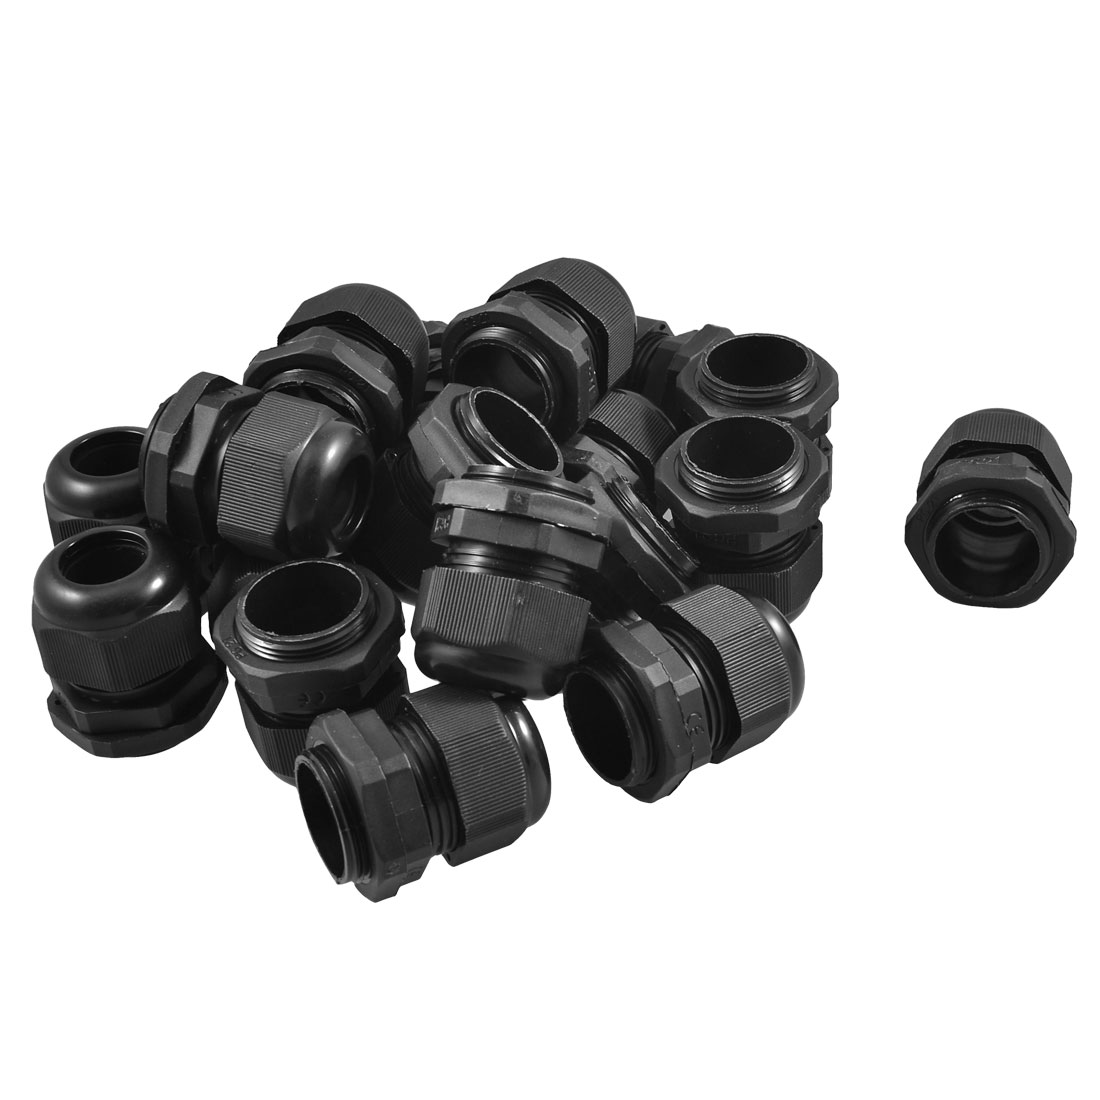 Black-Plastic-Waterproof-Connector-PG21-13-18mm-Diameter-Cable-Gland-20PCS